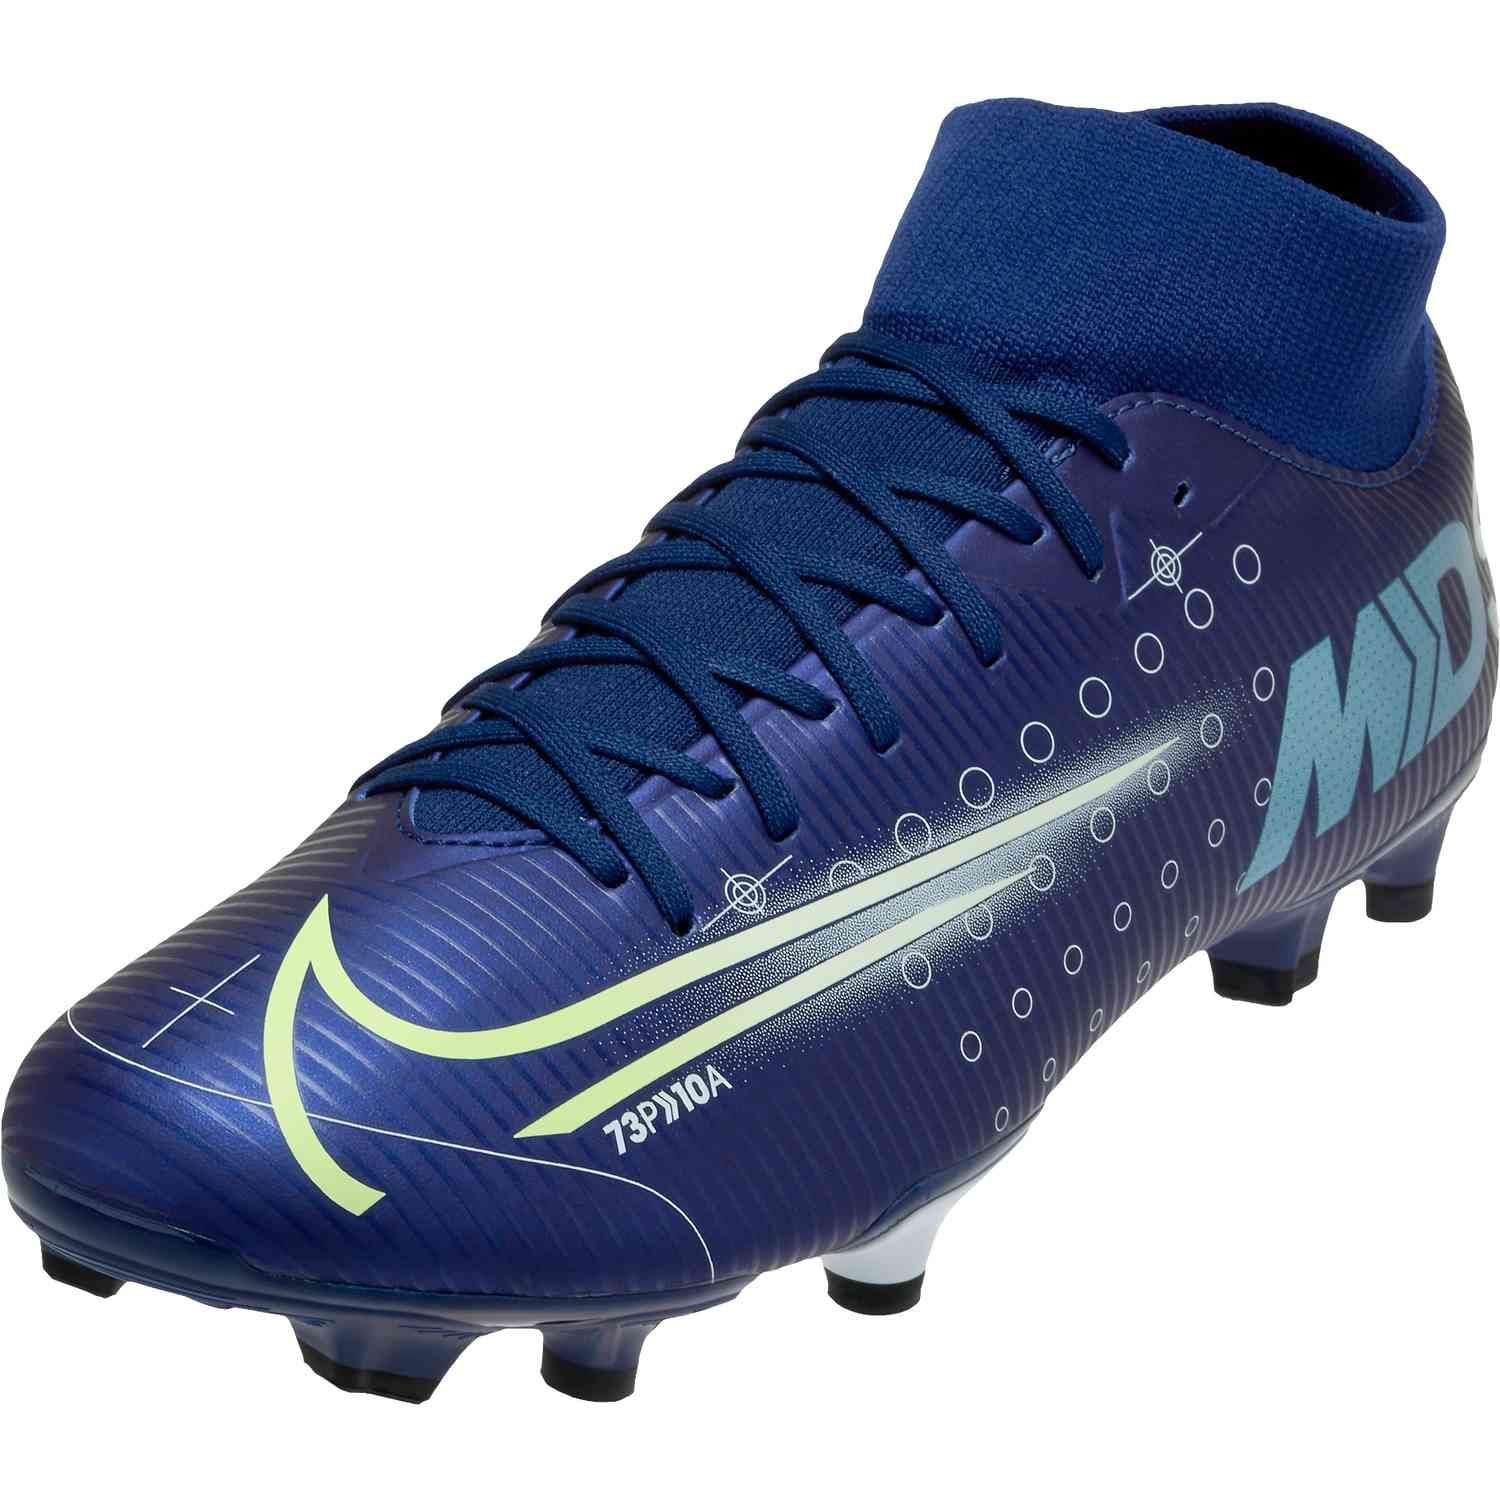 Nike Mercurial Superfly 7 Academy Fg Dream Speed Soccerpro In 2020 Superfly Cleats Superfly Superfly Soccer Cleats